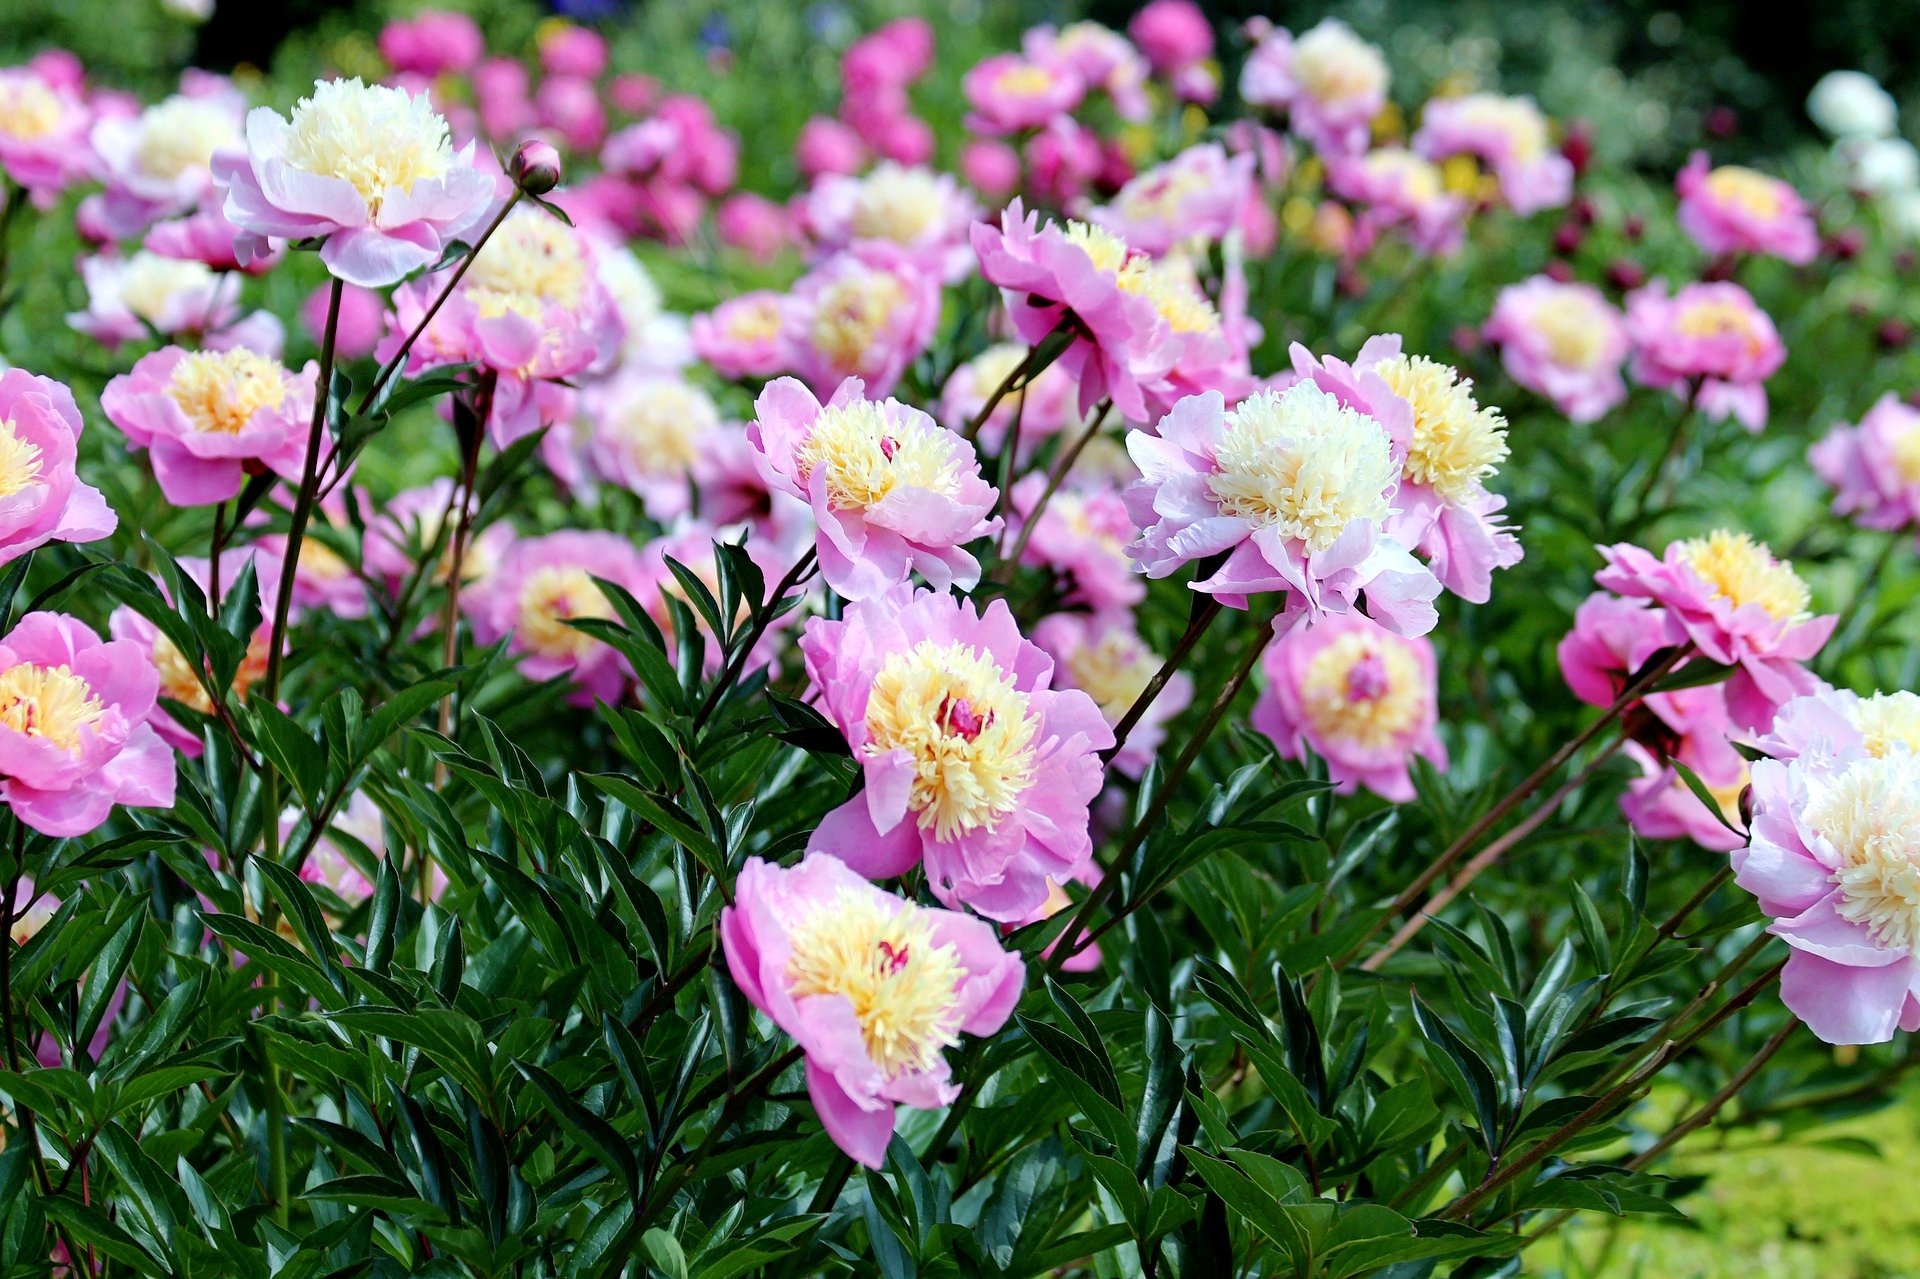 Pianese Flowers Peonies Planting Growing And Caring For Peony Flowers The Old